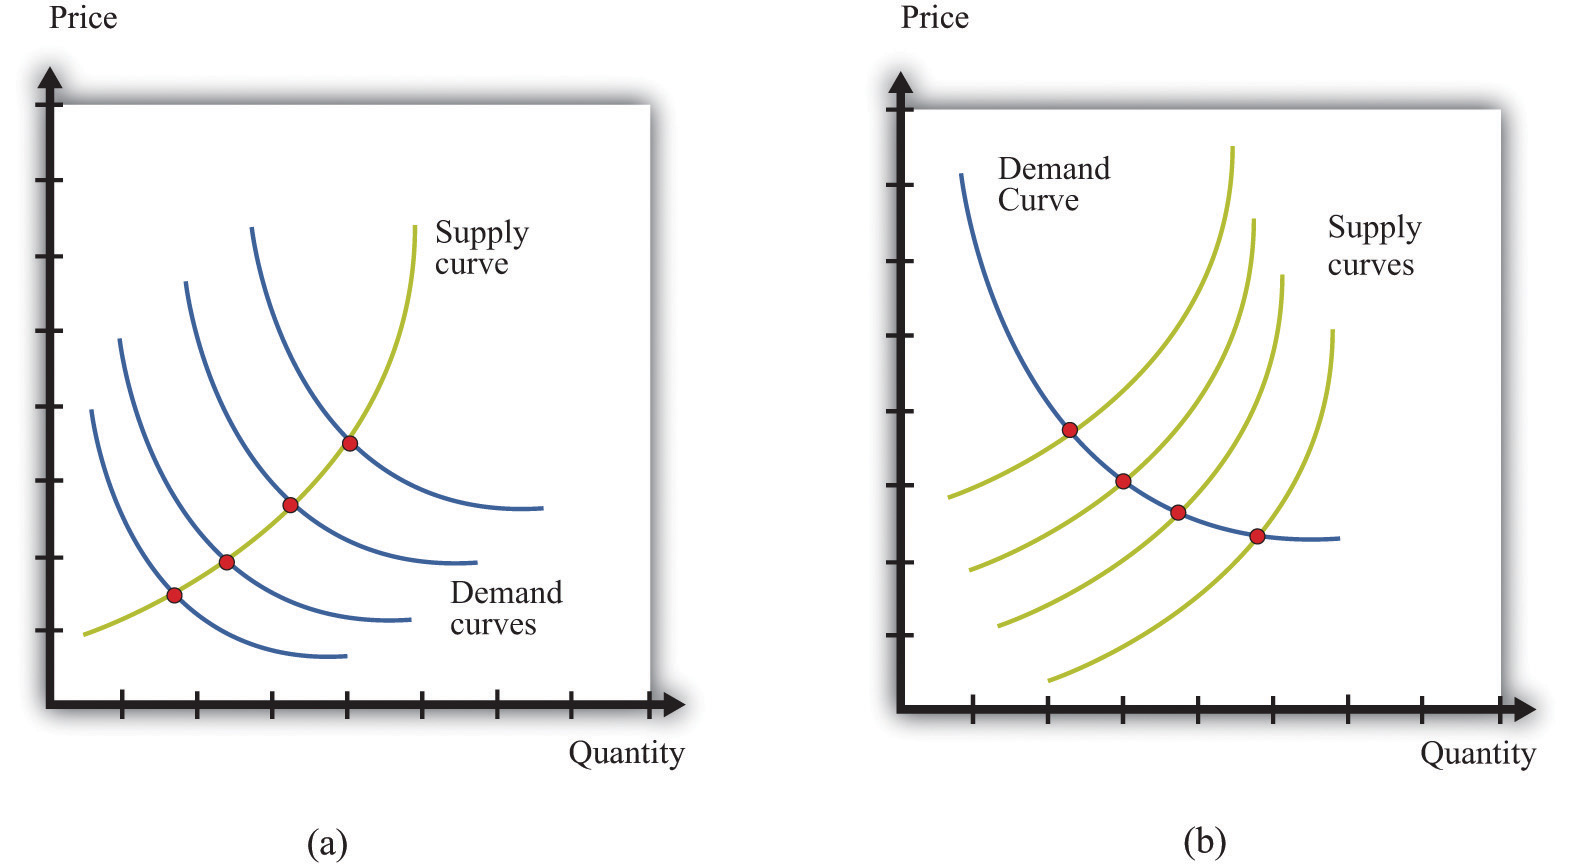 using demand and supply analysis identify The rules clearly state that if demand is greater than supply prices must go up and if supply is greater than demand prices must go down our task as objective and disciplined traders, is to simply incorporate this dynamic into our trading activity.